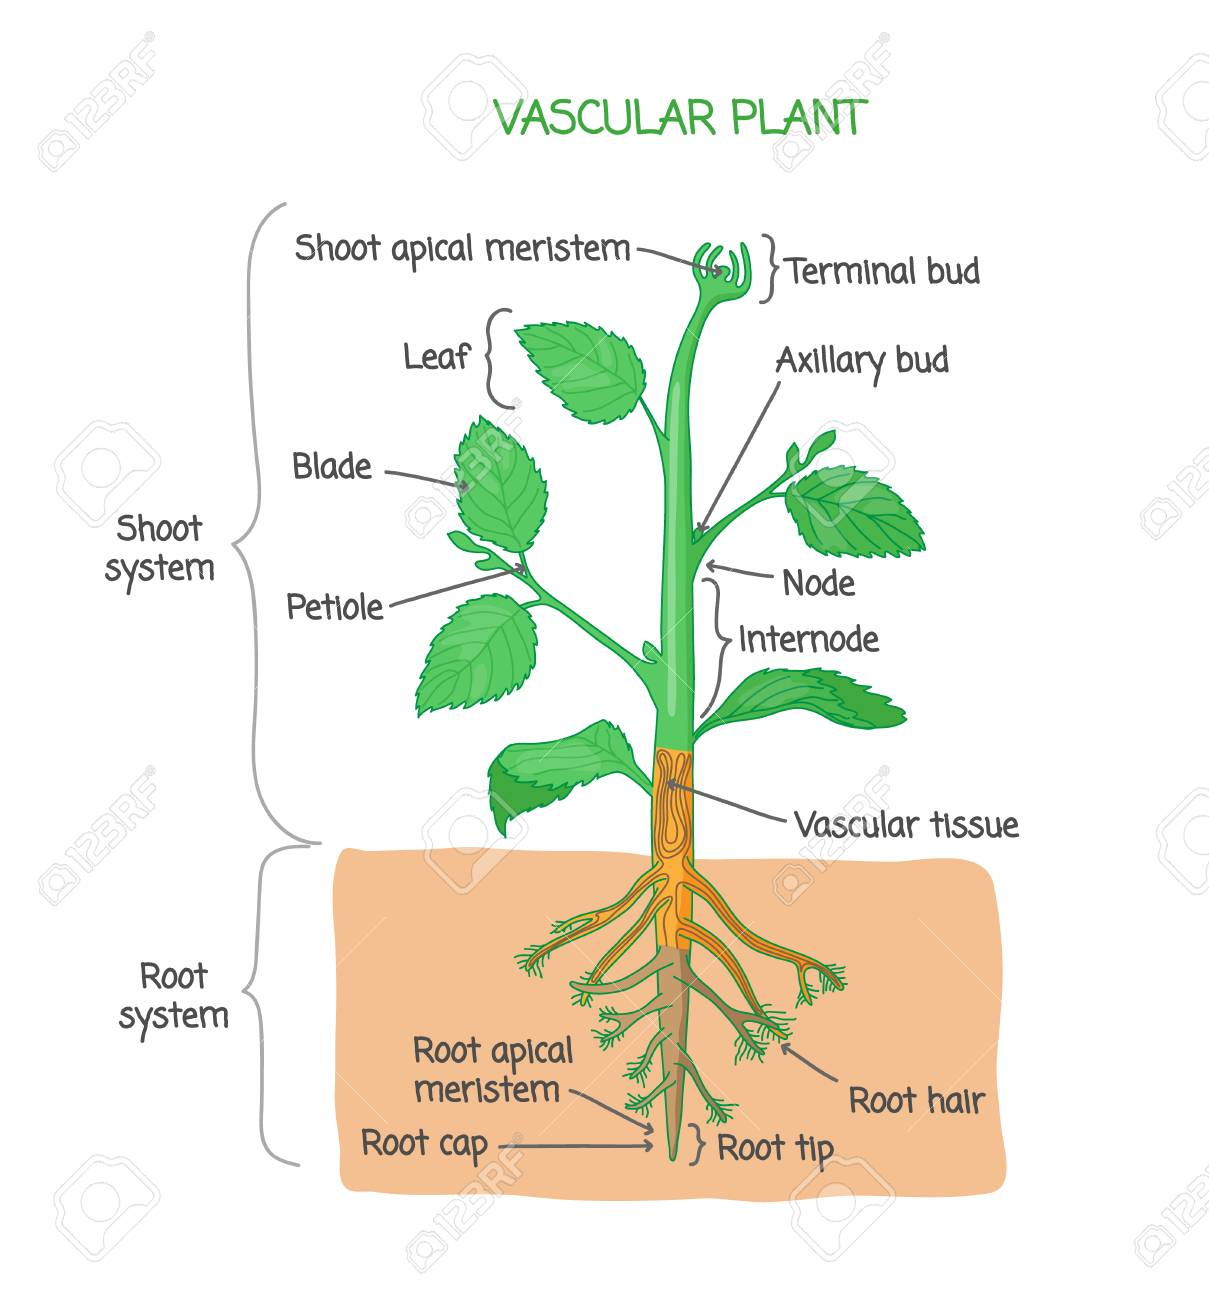 hight resolution of vascular plant biological structure diagram with labels vector illustration drawing poster educational scheme with